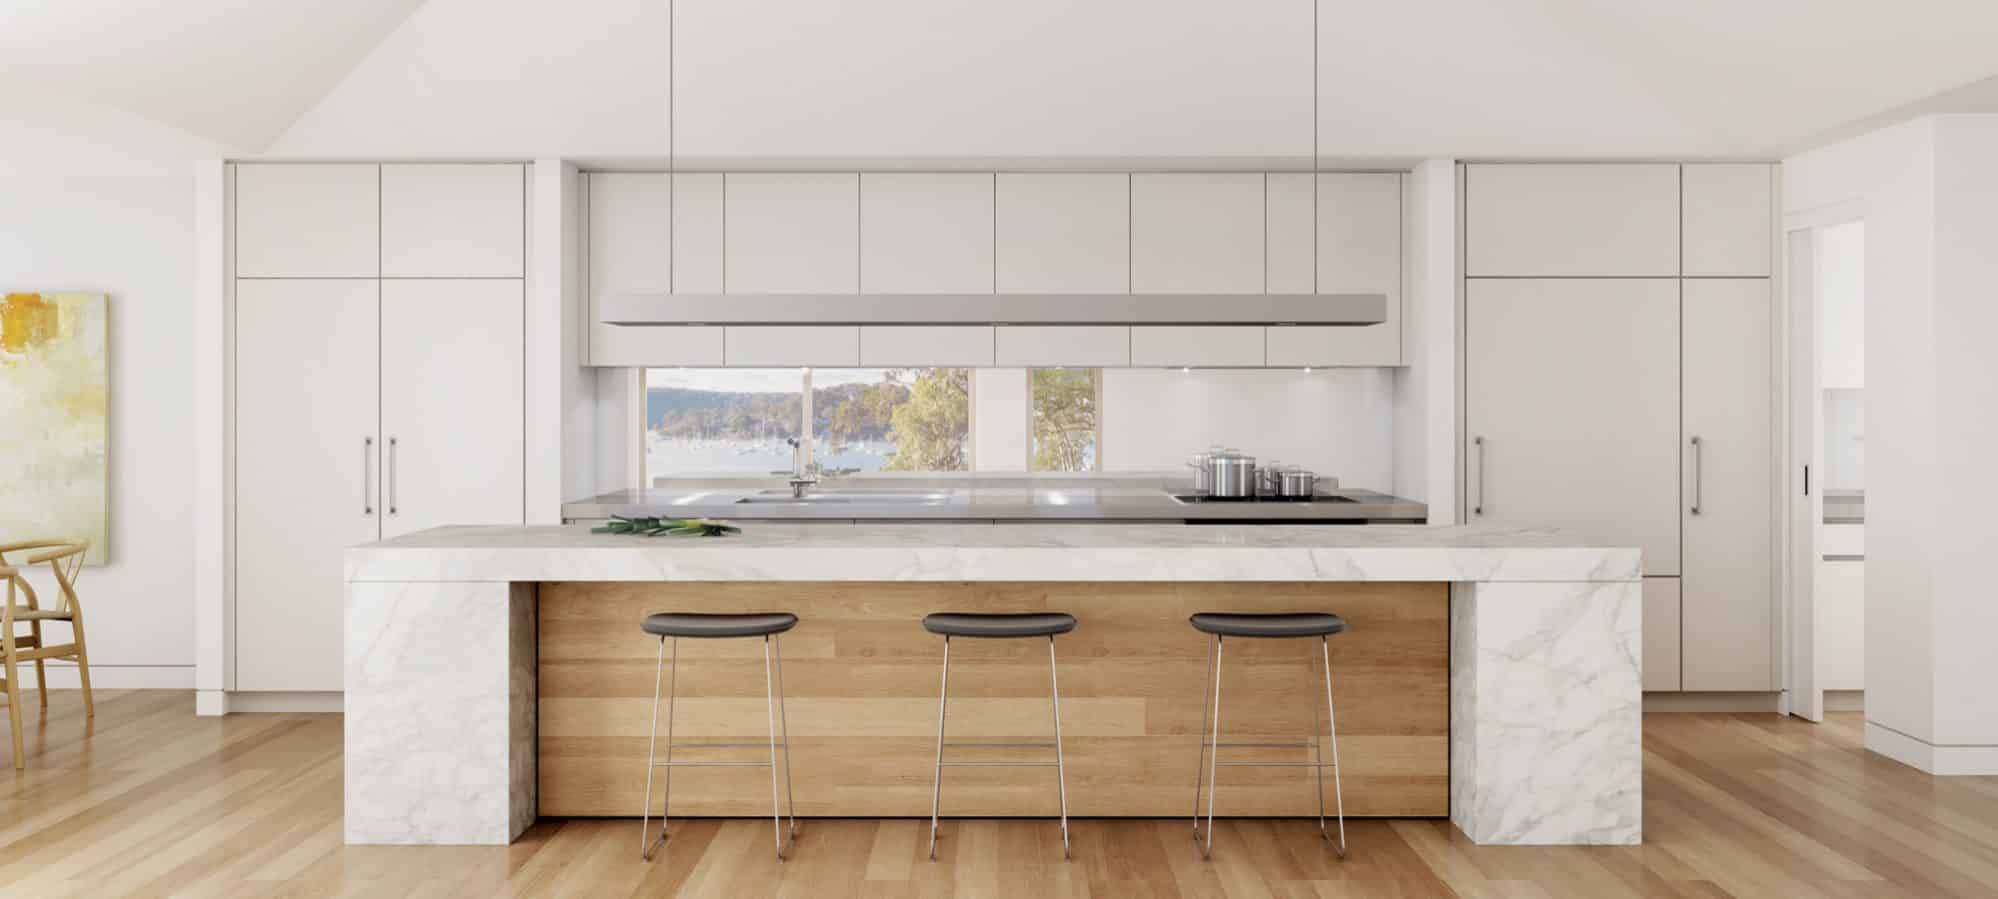 A photo realistic image of the kitchen